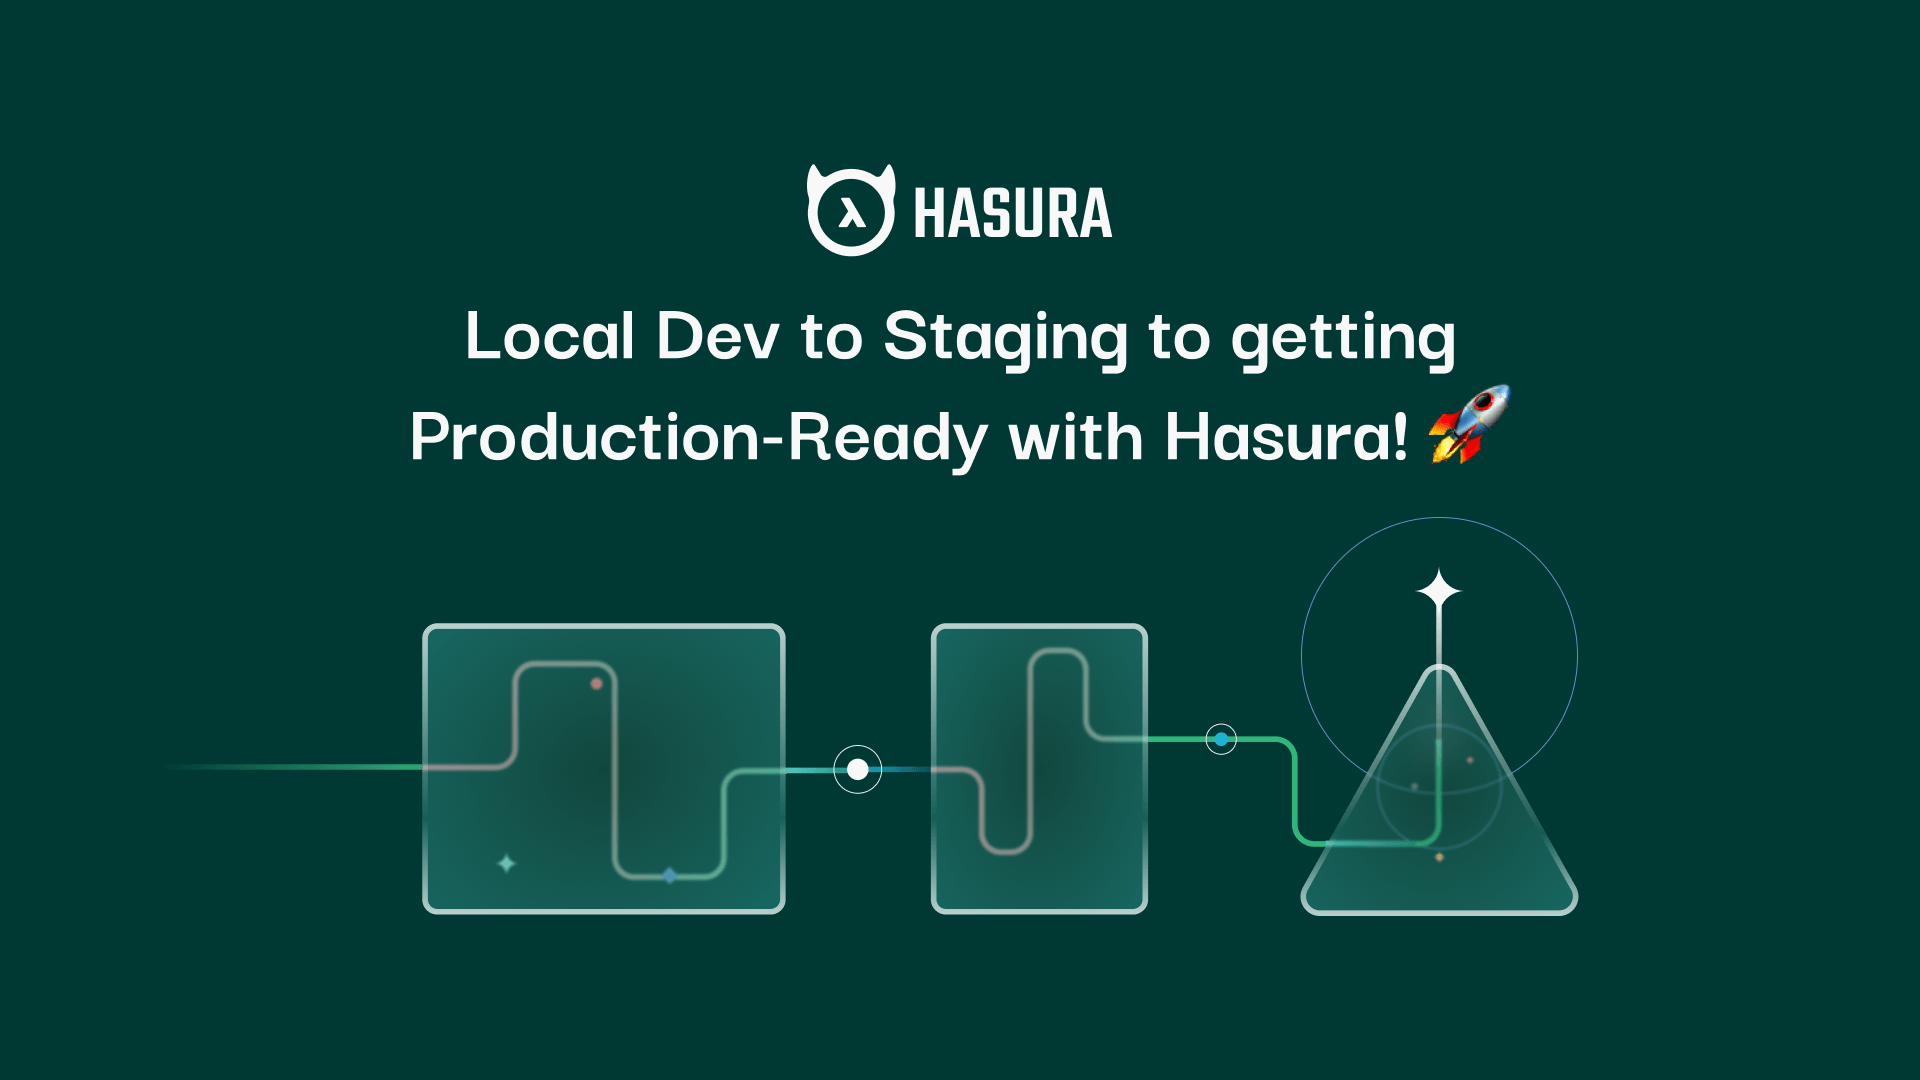 Local Dev to Staging to getting Production-Ready with Hasura! 🚀